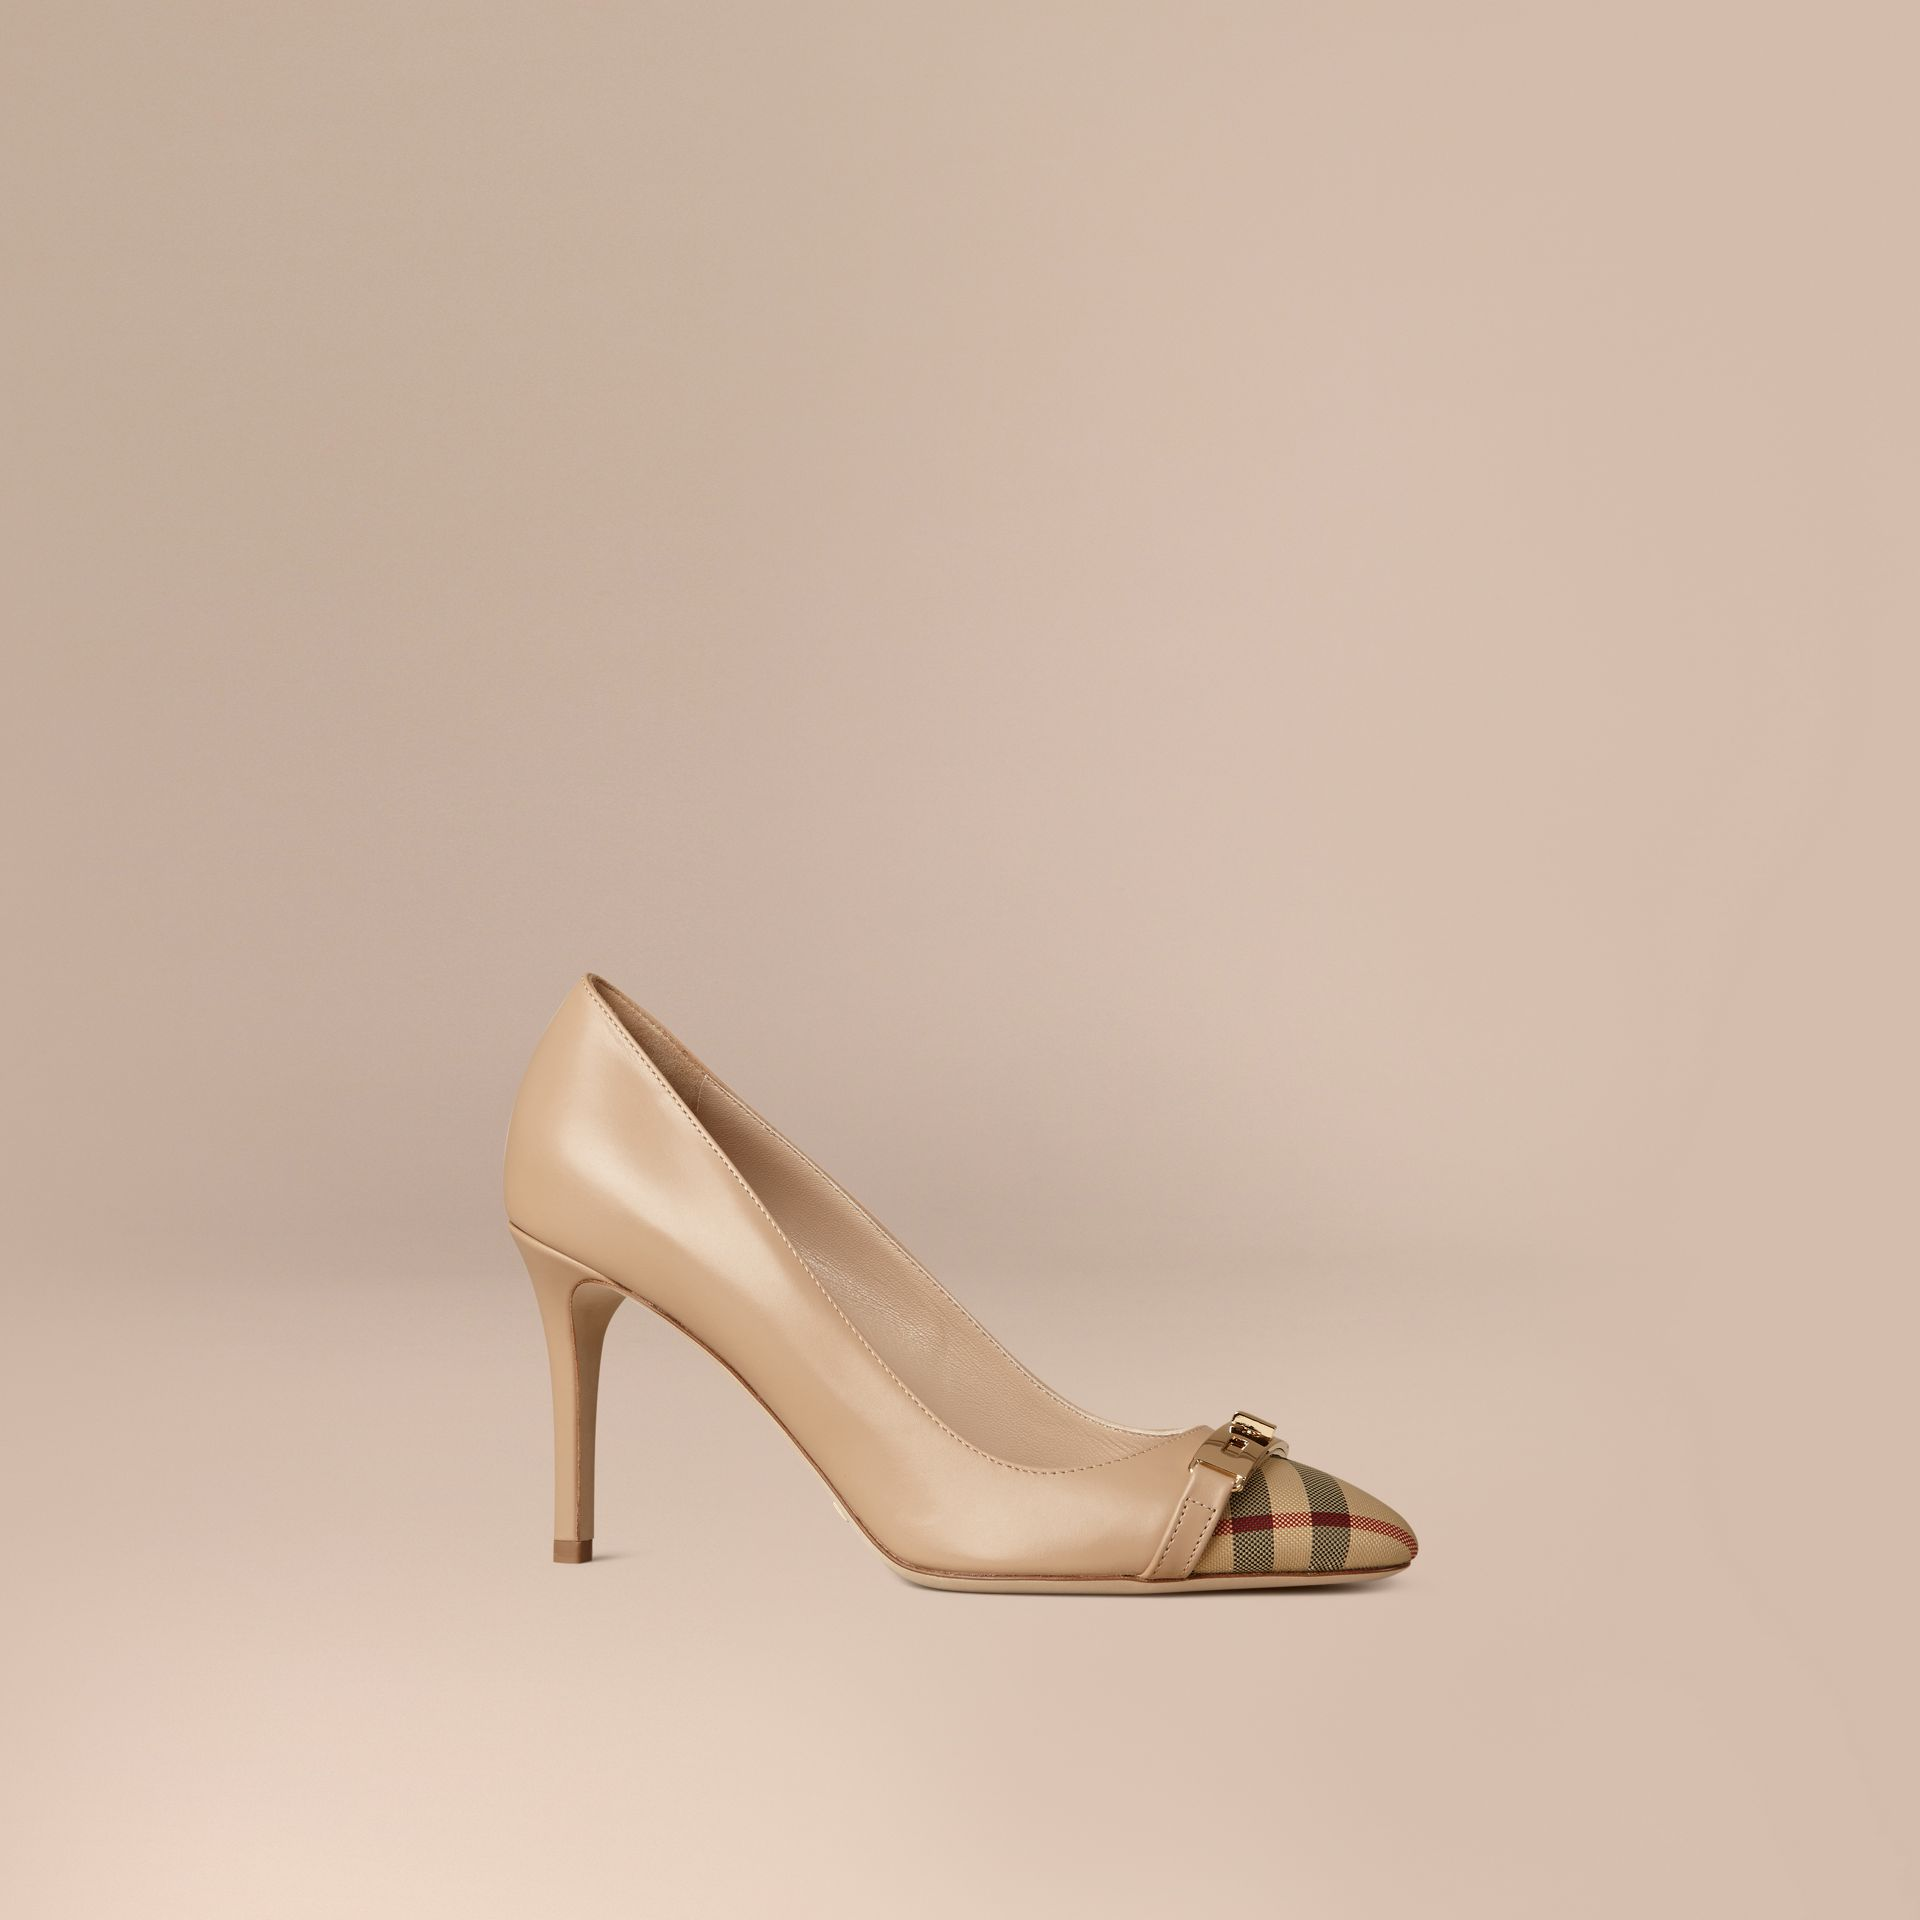 Horseferry Check Leather Pumps in Light Nude - Women | Burberry - gallery image 1